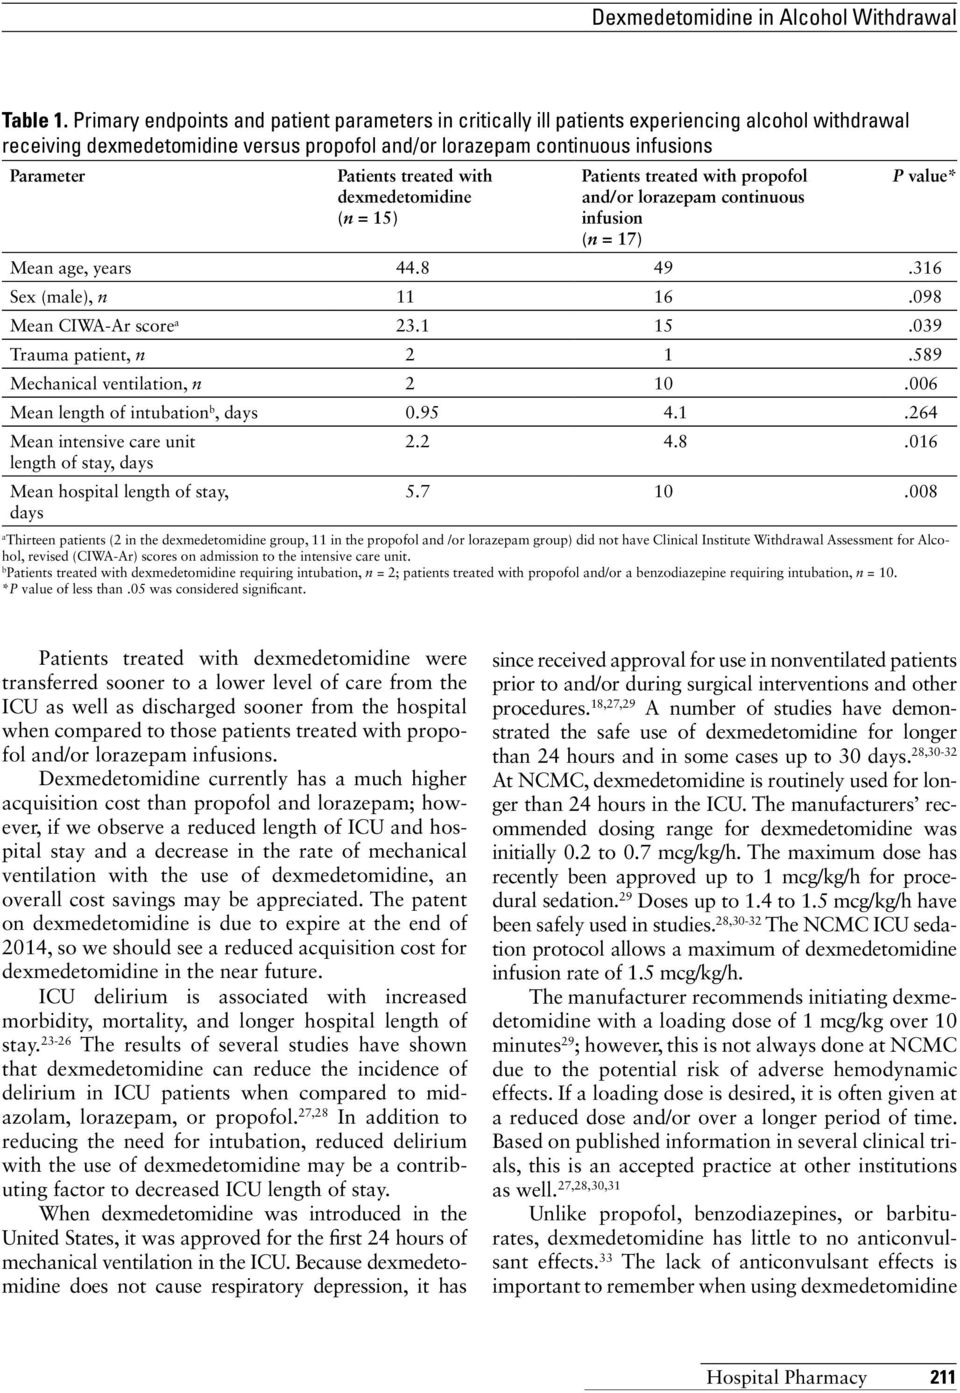 treated with dexmedetomidine (n = 15) Patients treated with propofol and/or lorazepam continuous infusion (n = 17) P value* Mean age, years 44.8 49.316 Sex (male), n 11 16.098 Mean CIWA-Ar score a 23.